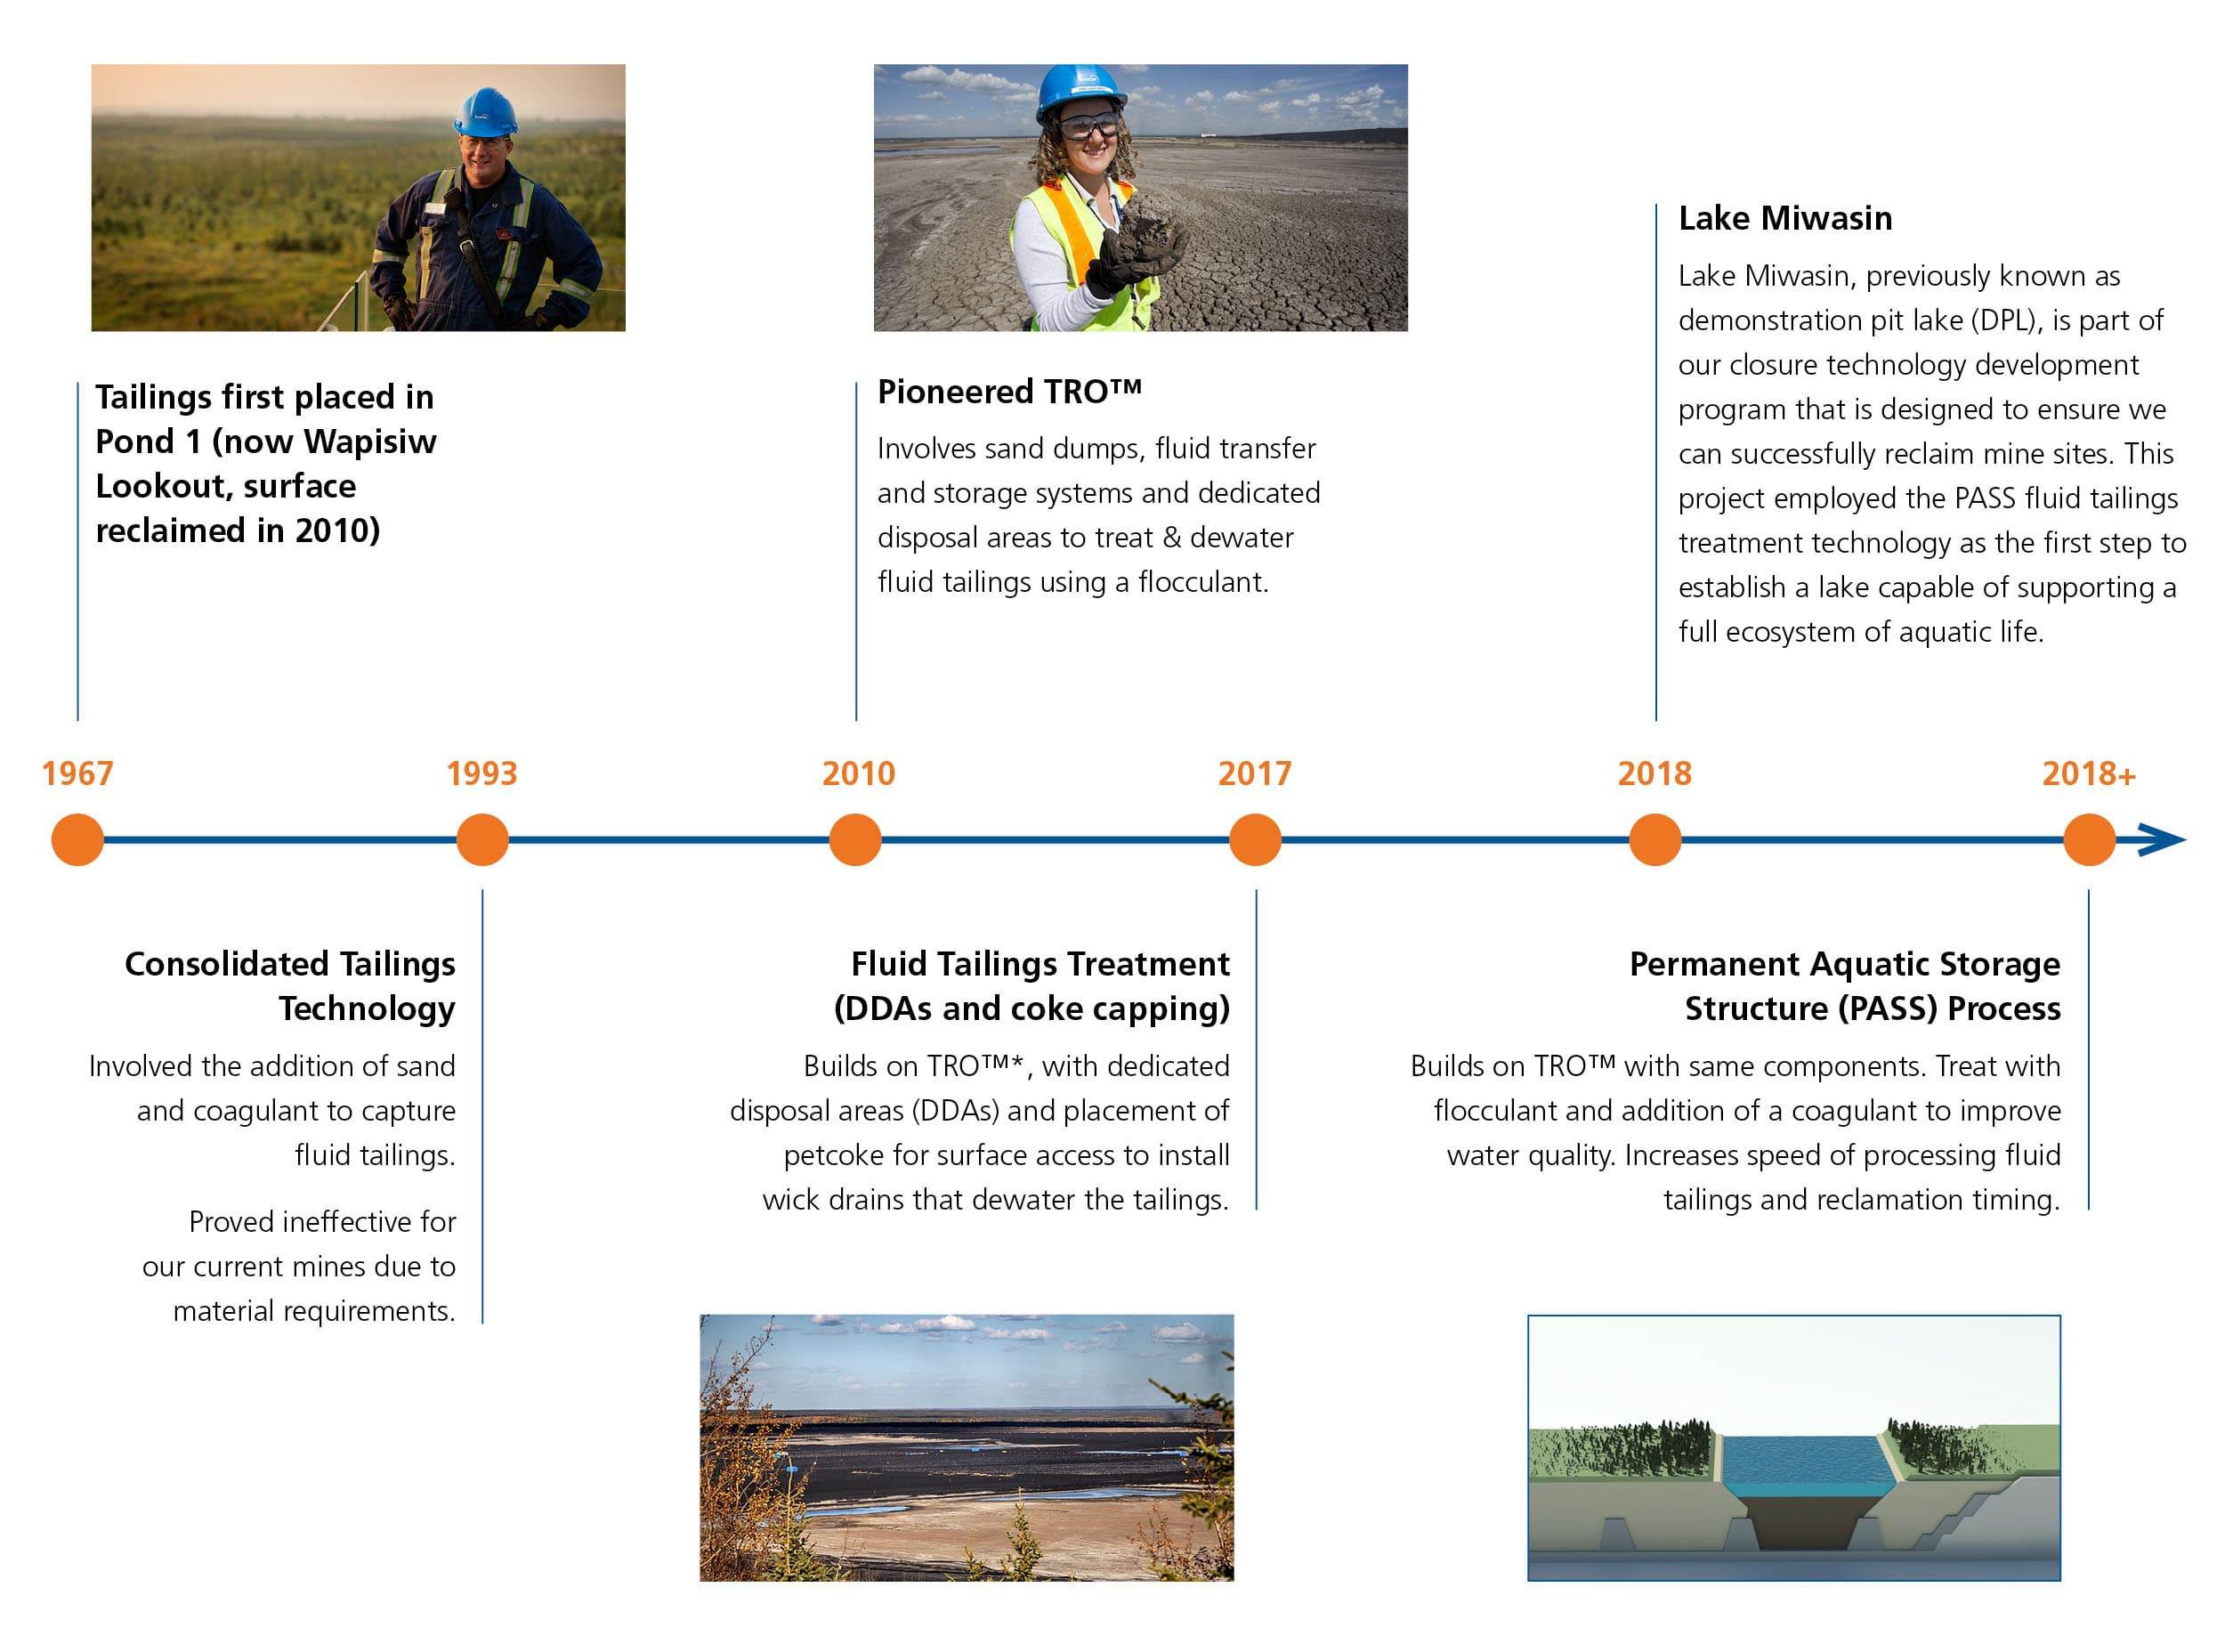 Tailings reclamation timeline